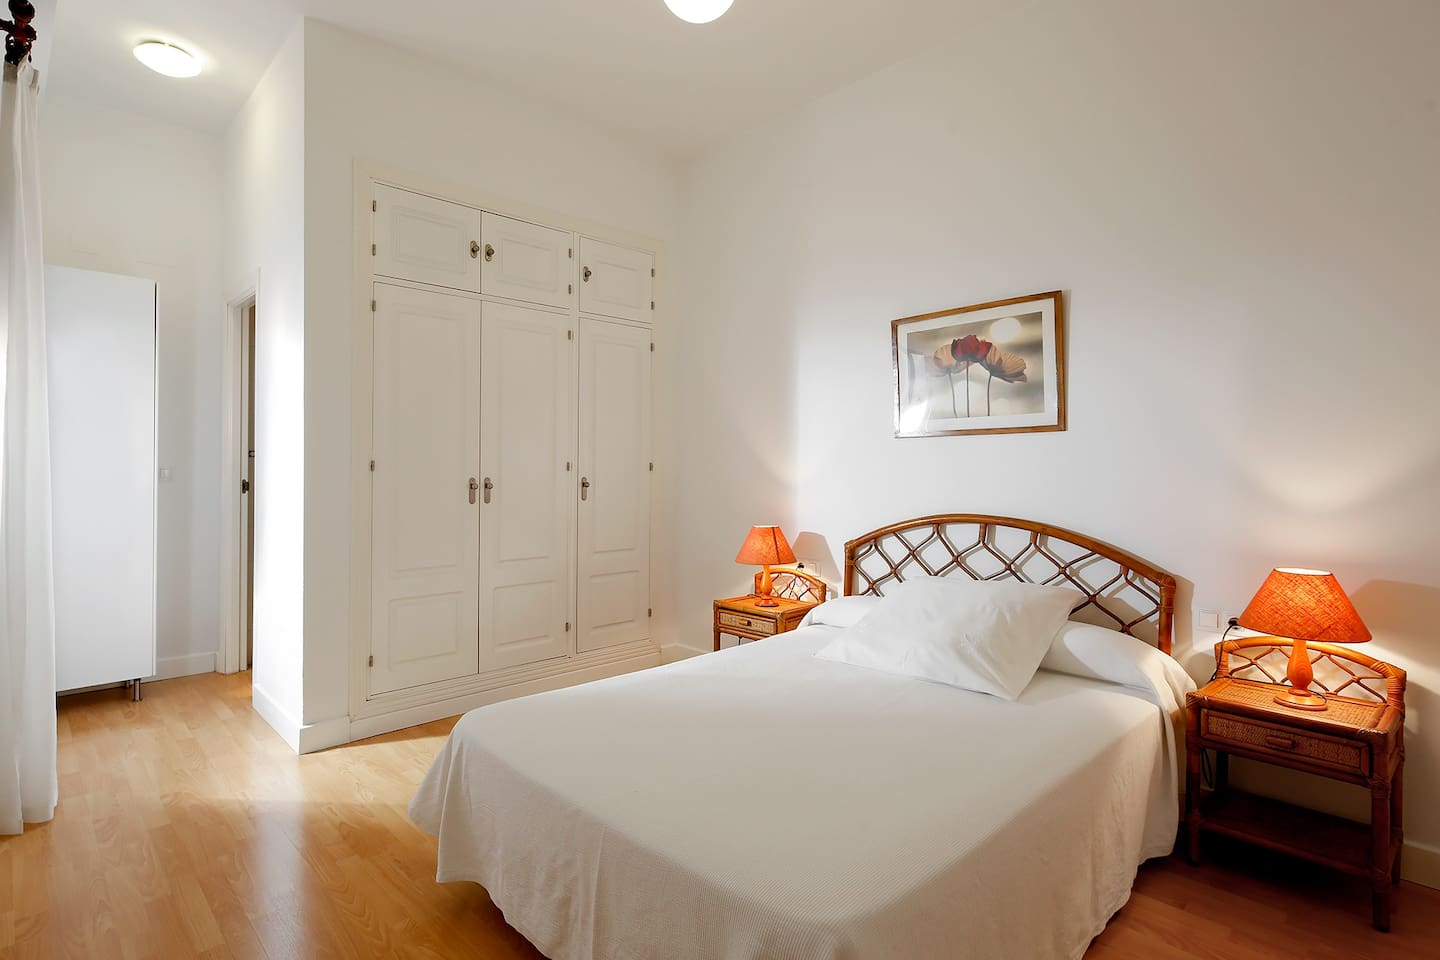 One bedroom apartment for 2-3 guests.